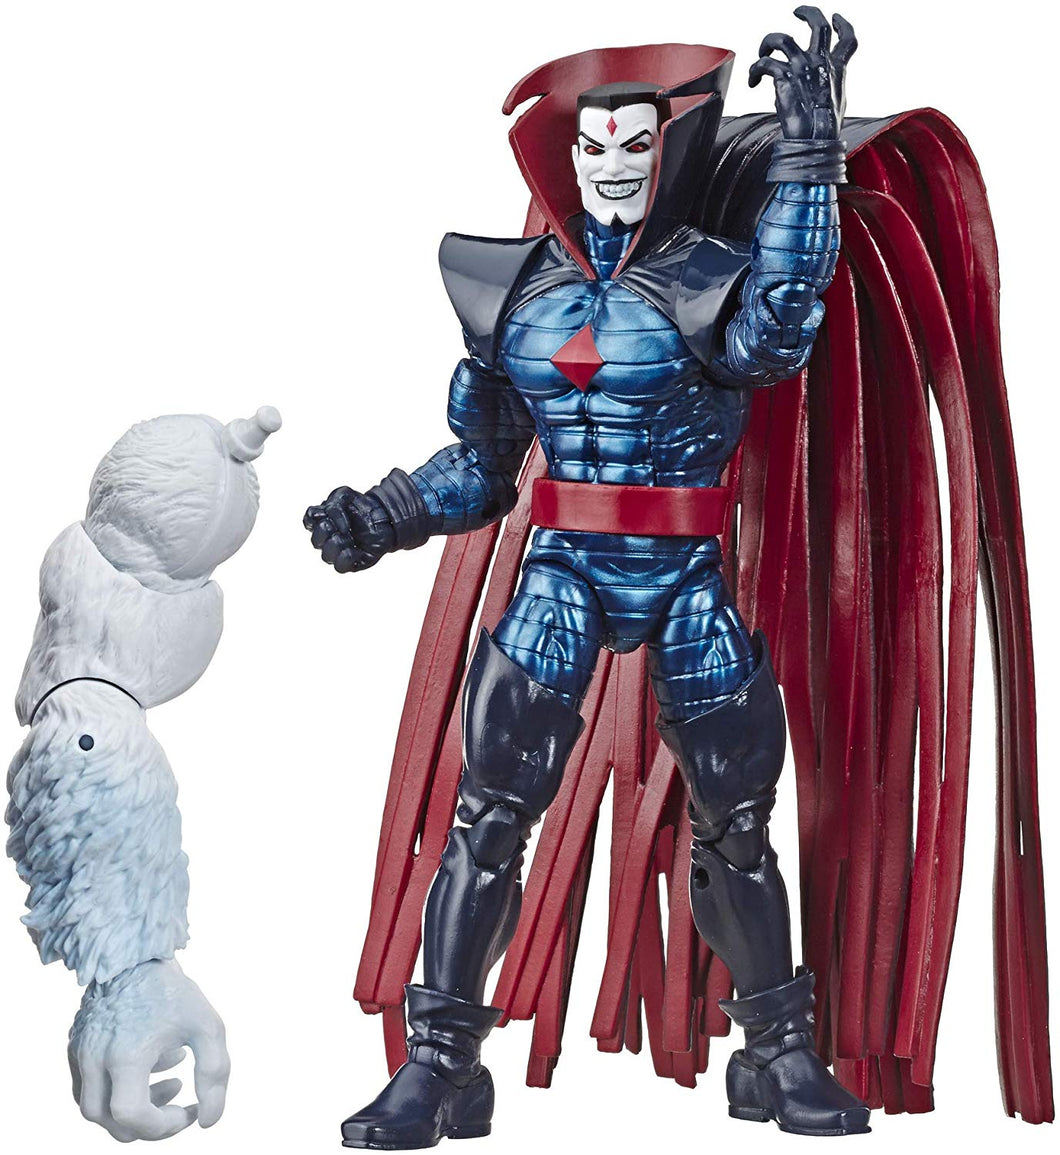 Marvel Legends Series 6